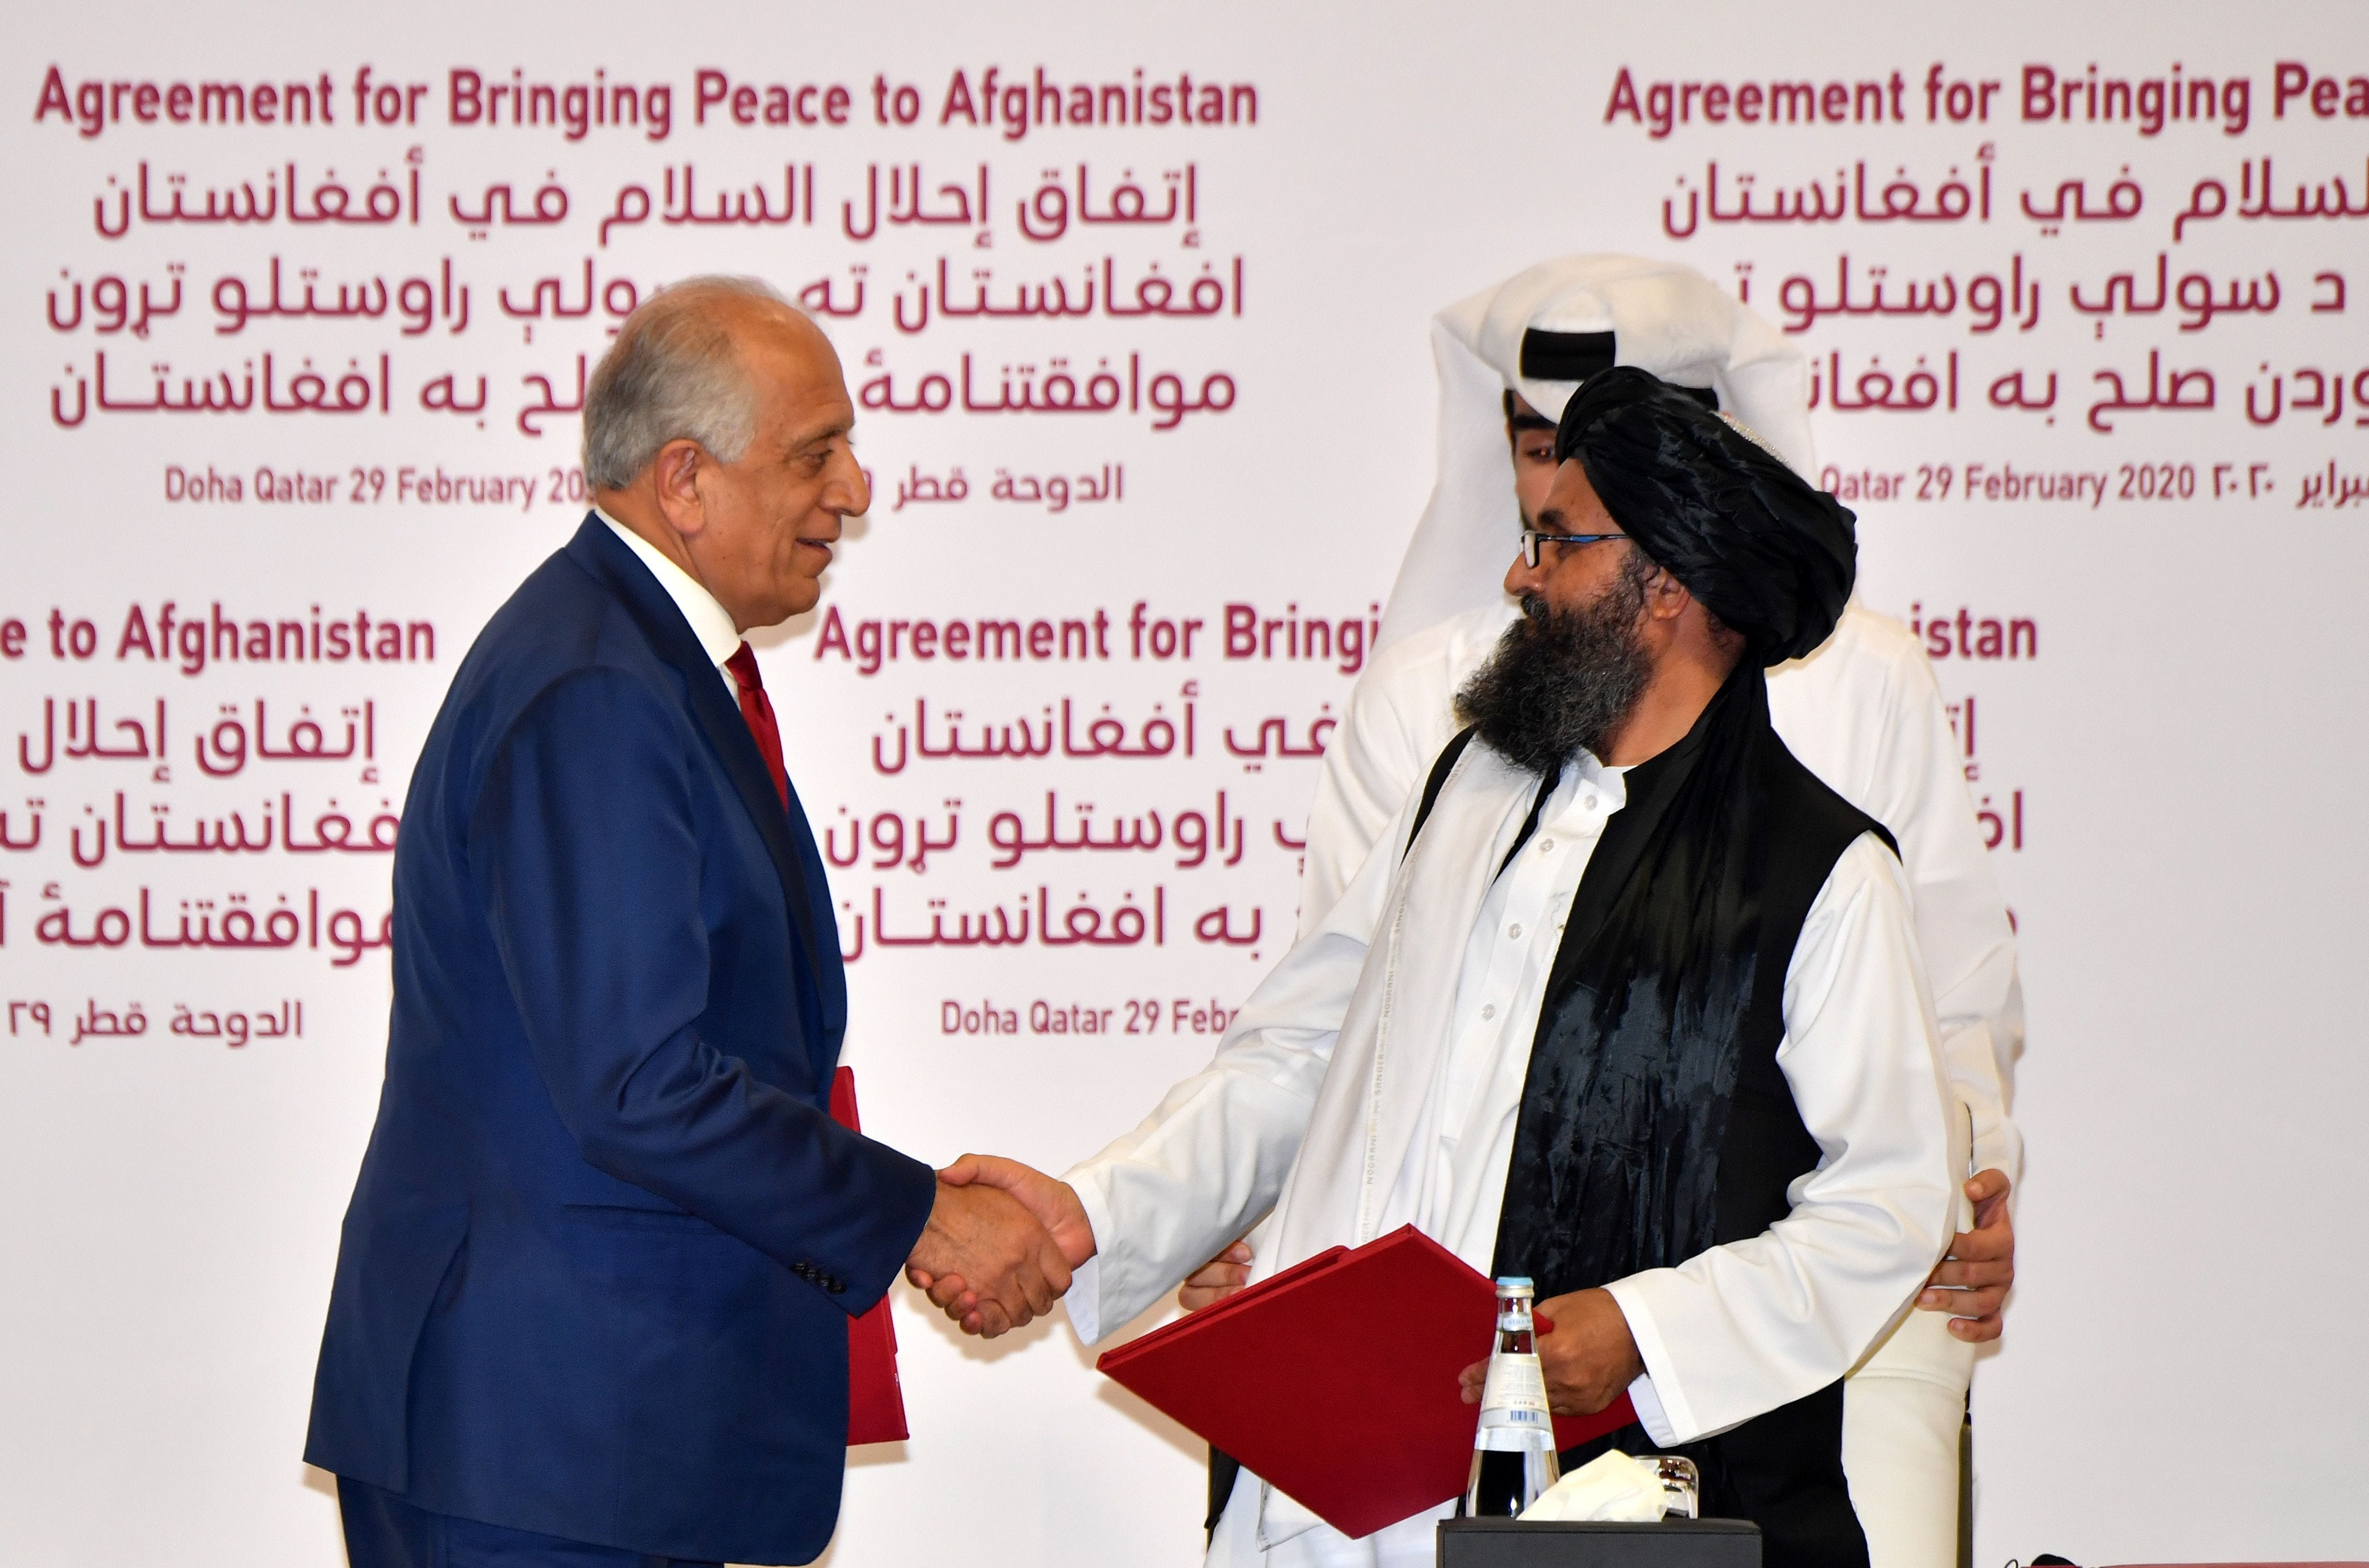 U.S. Special Representative for Afghanistan Reconciliation Zalmay Khalilzad and Taliban co-founder Mullah Abdul Ghani Baradar shake hands after signing a peace agreement Feb. 29, 2020, during a ceremony in the Qatari capital Doha.